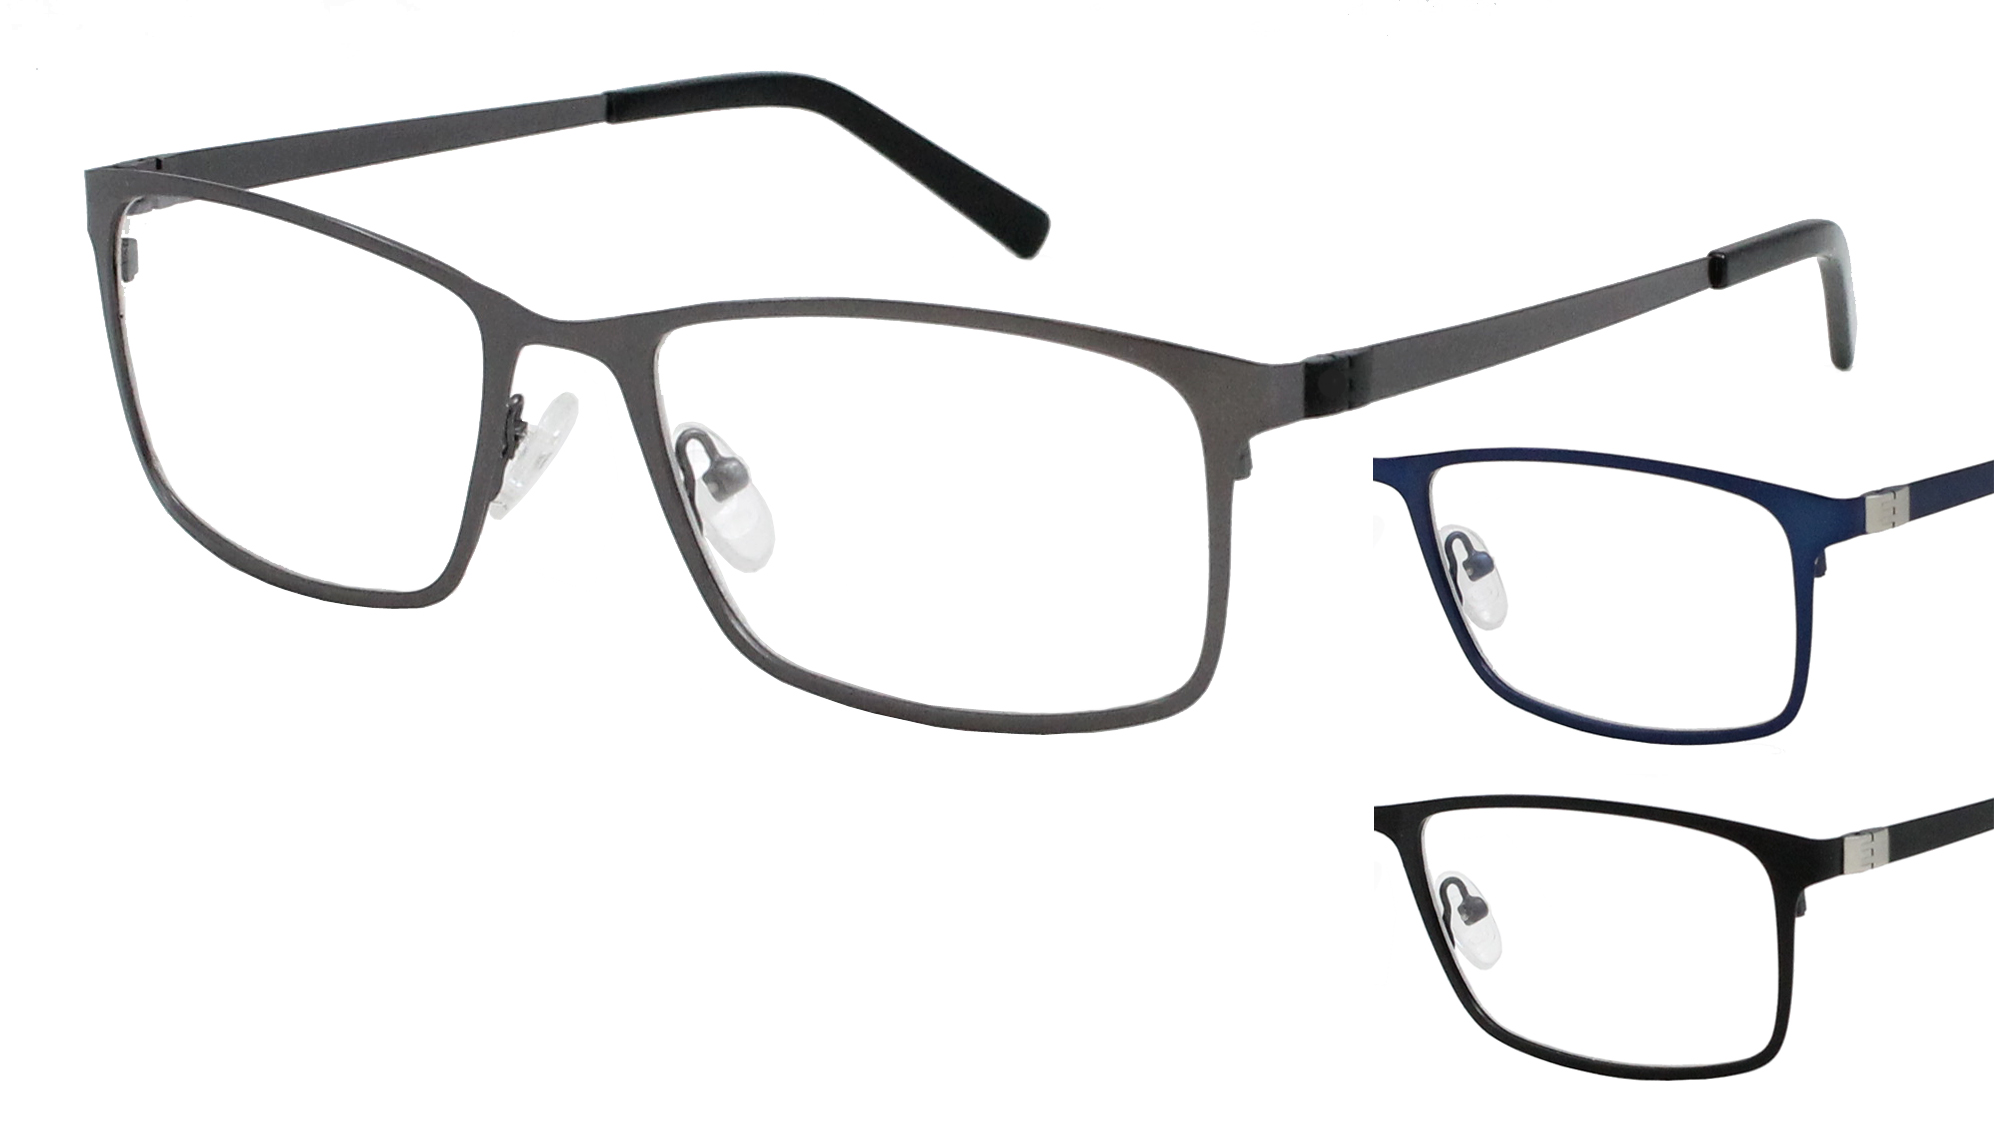 Qube Glasses Frames : Rage 478 - Mirage Eyewear